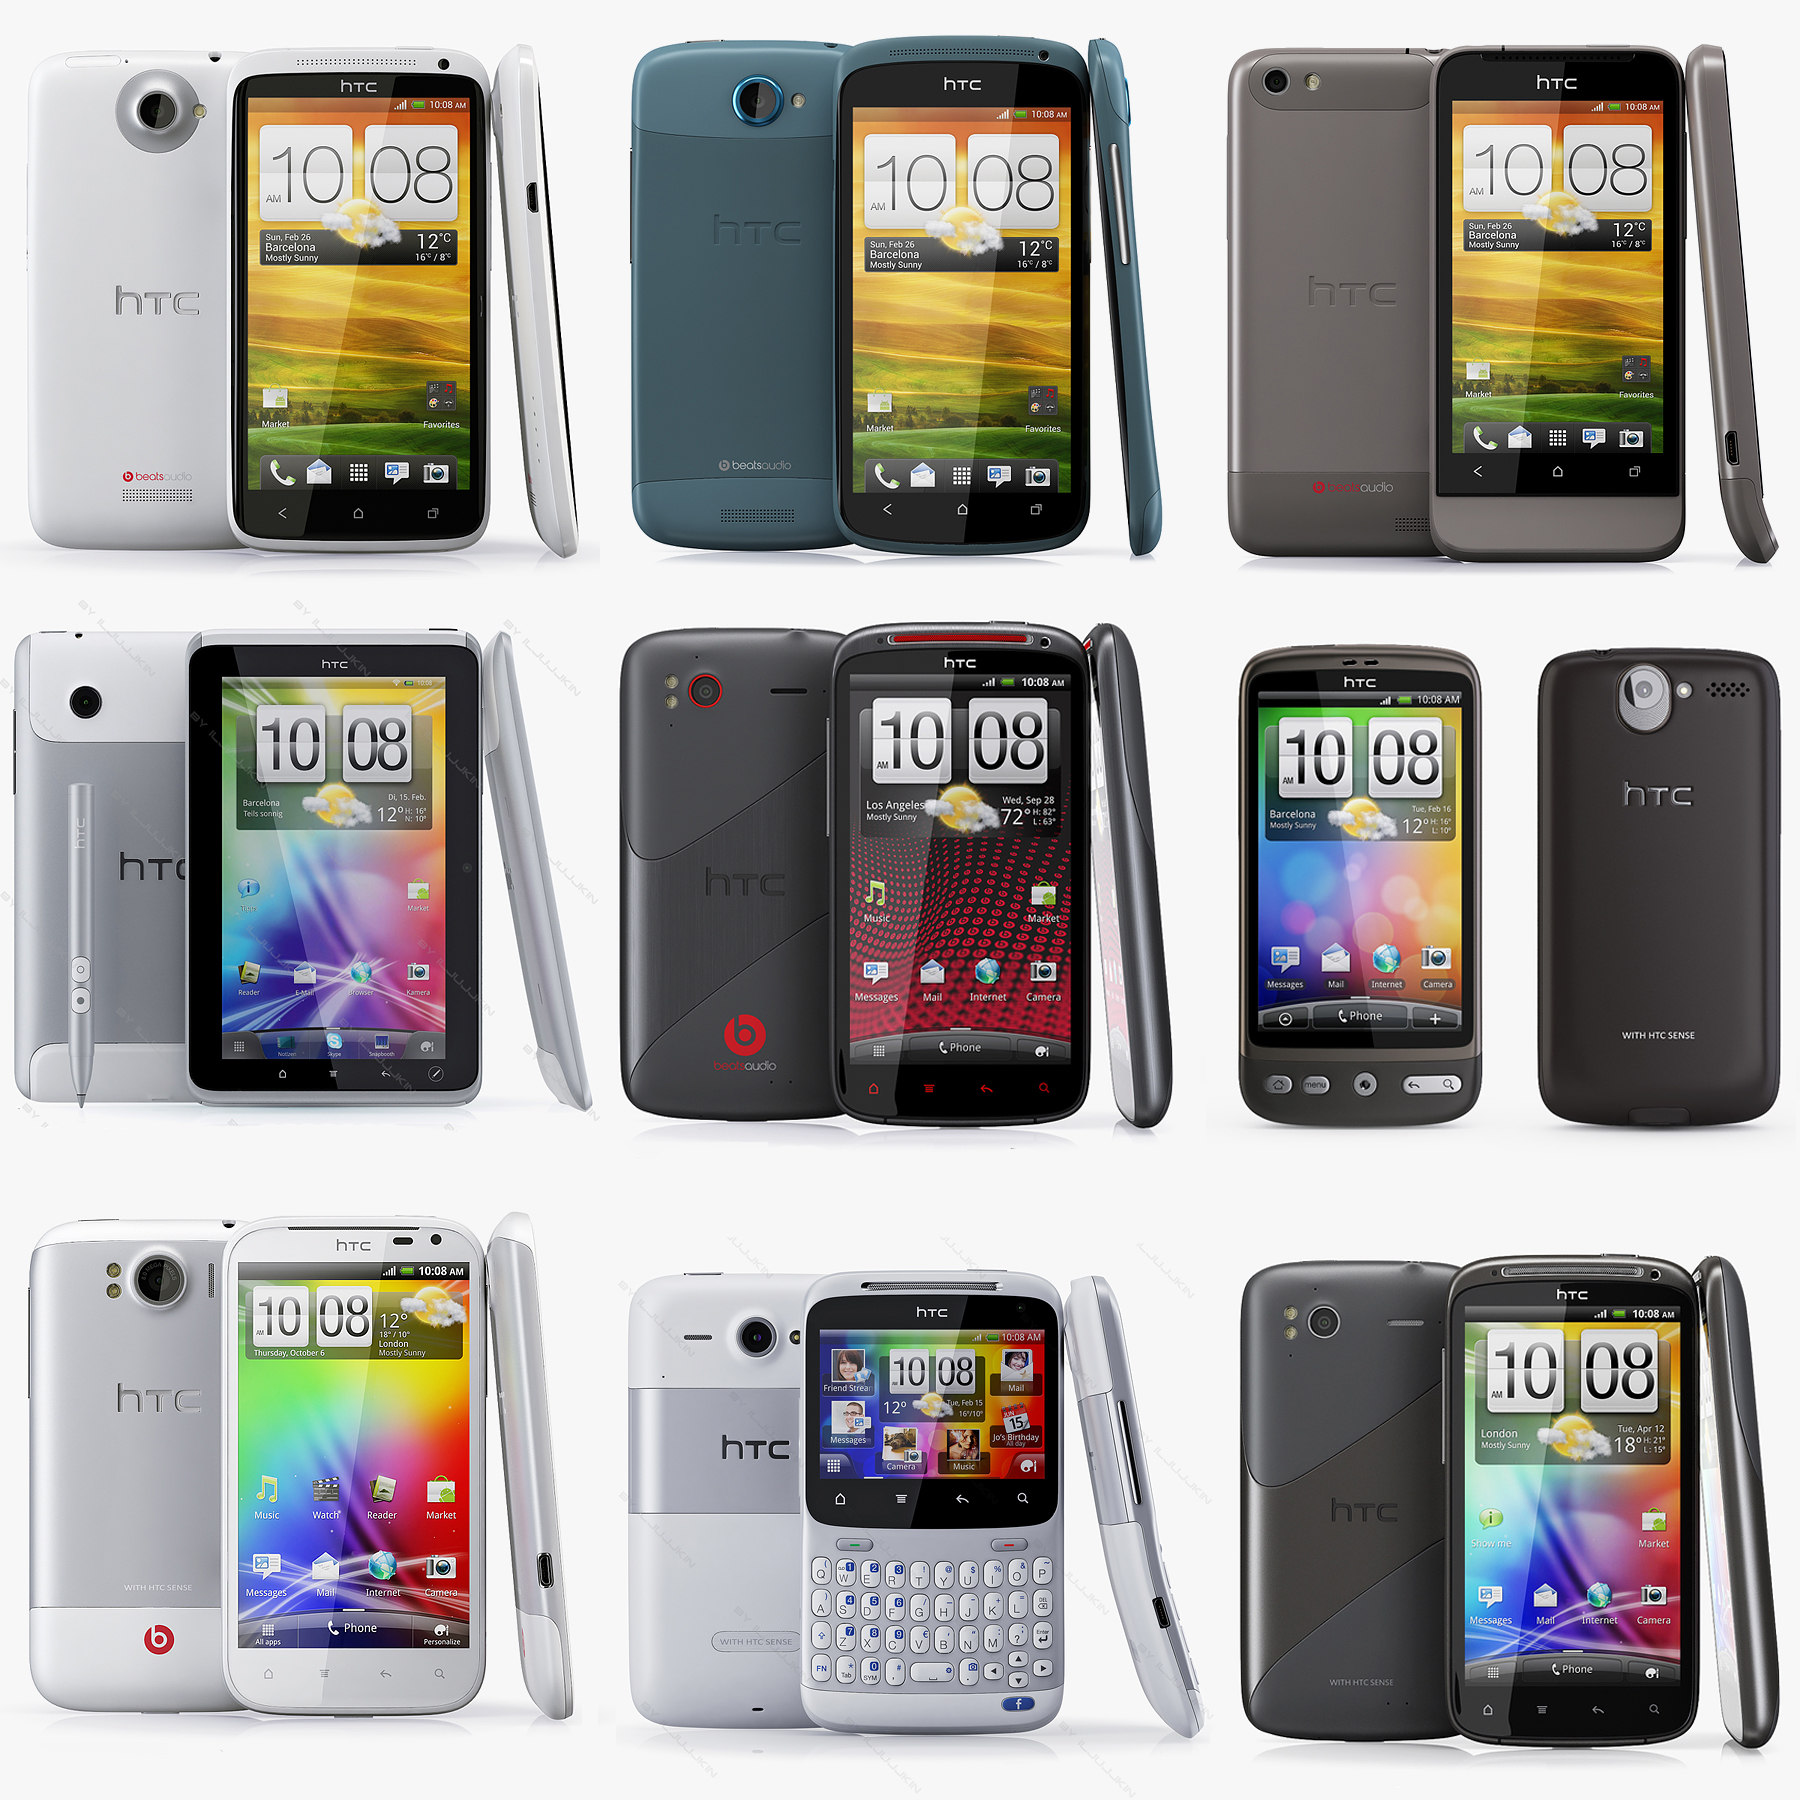 HTC_Collection_2.jpg